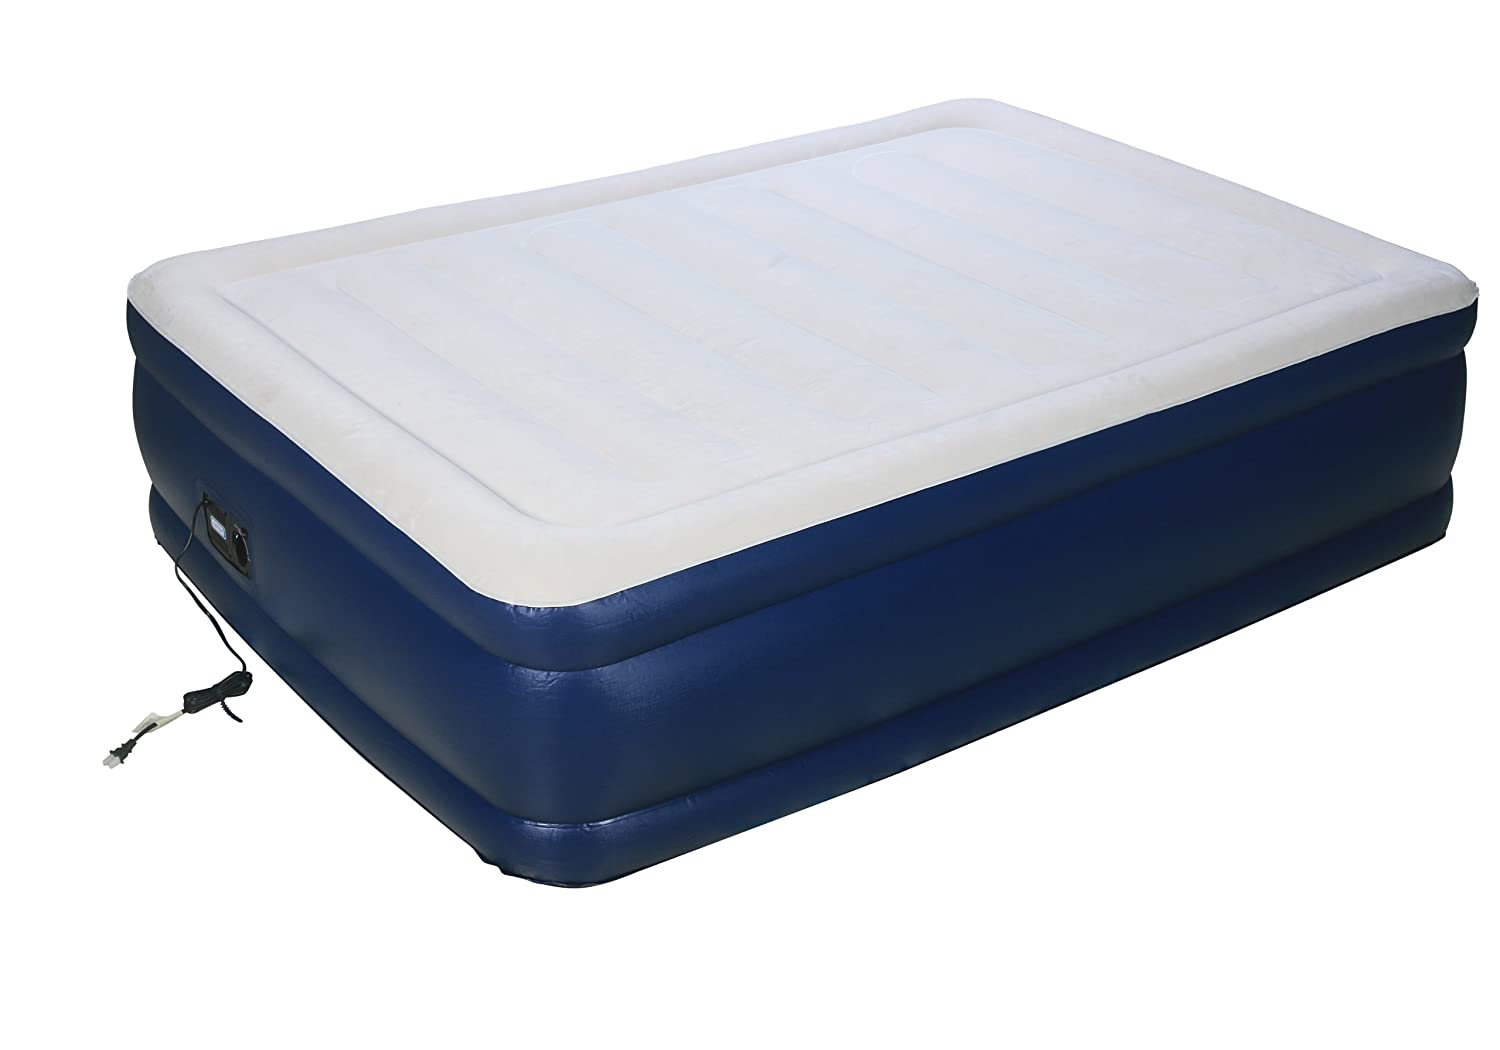 Airtek Full Keystone series Premium velvety Flocked top Air Mattress Airbed with Patented high-end Giga valve for ultra fast deflation extra thick 2ABF04005 Interworld Commerce Inc.